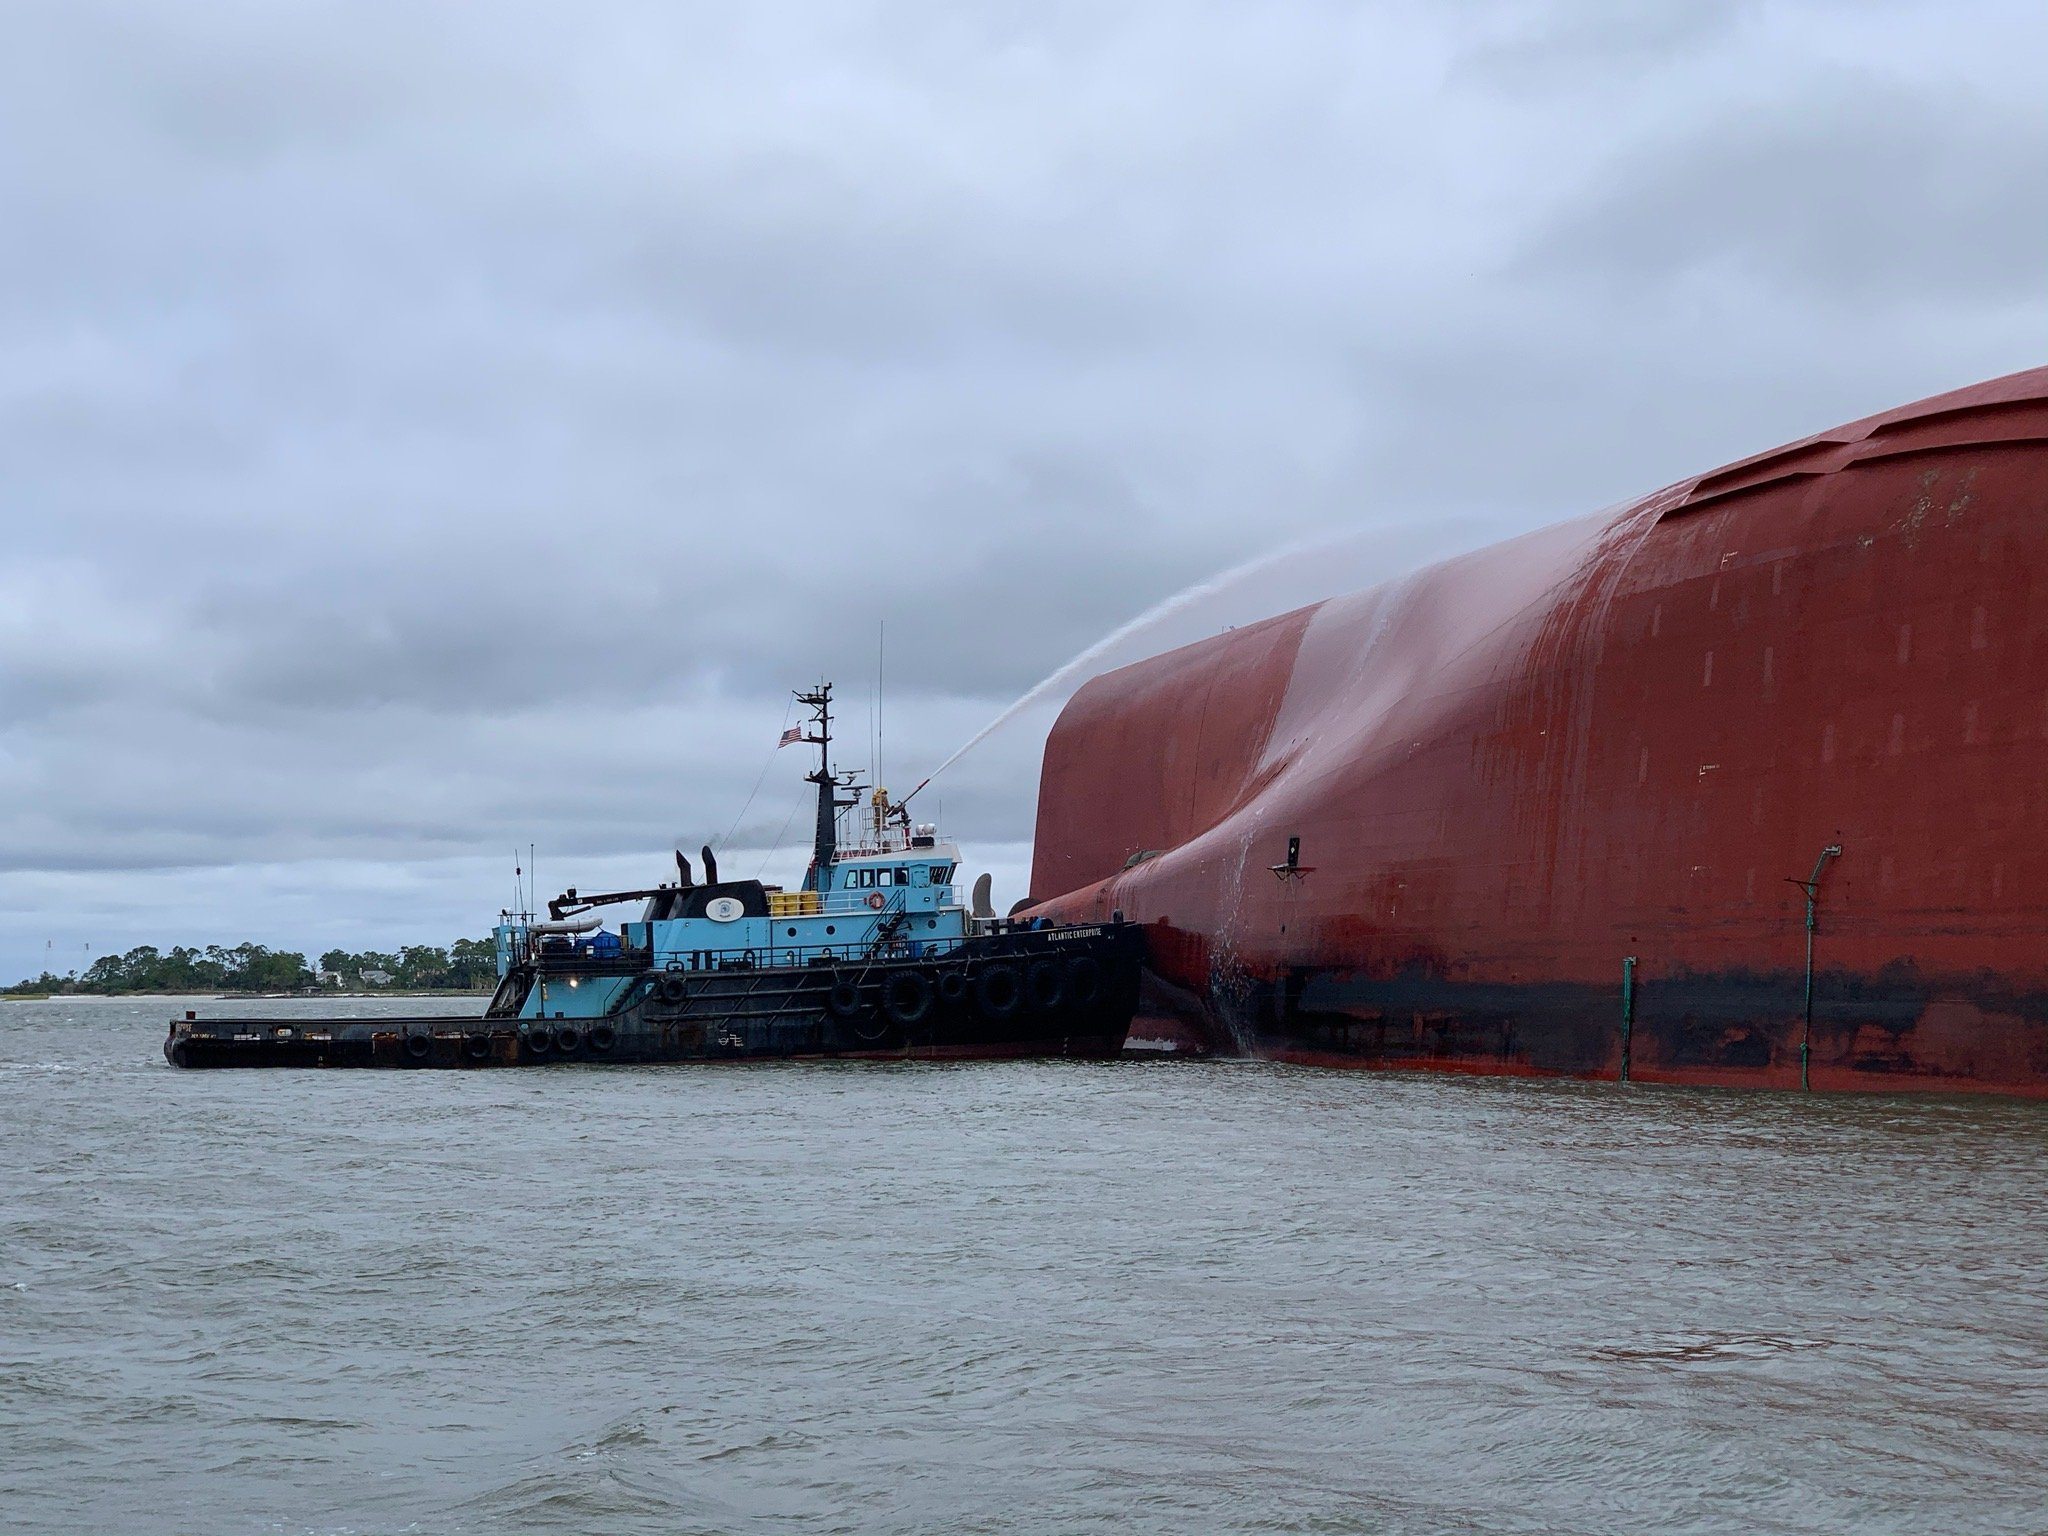 Crews have finished removing 320,000 gallons of oil and water from overturned cargo ship